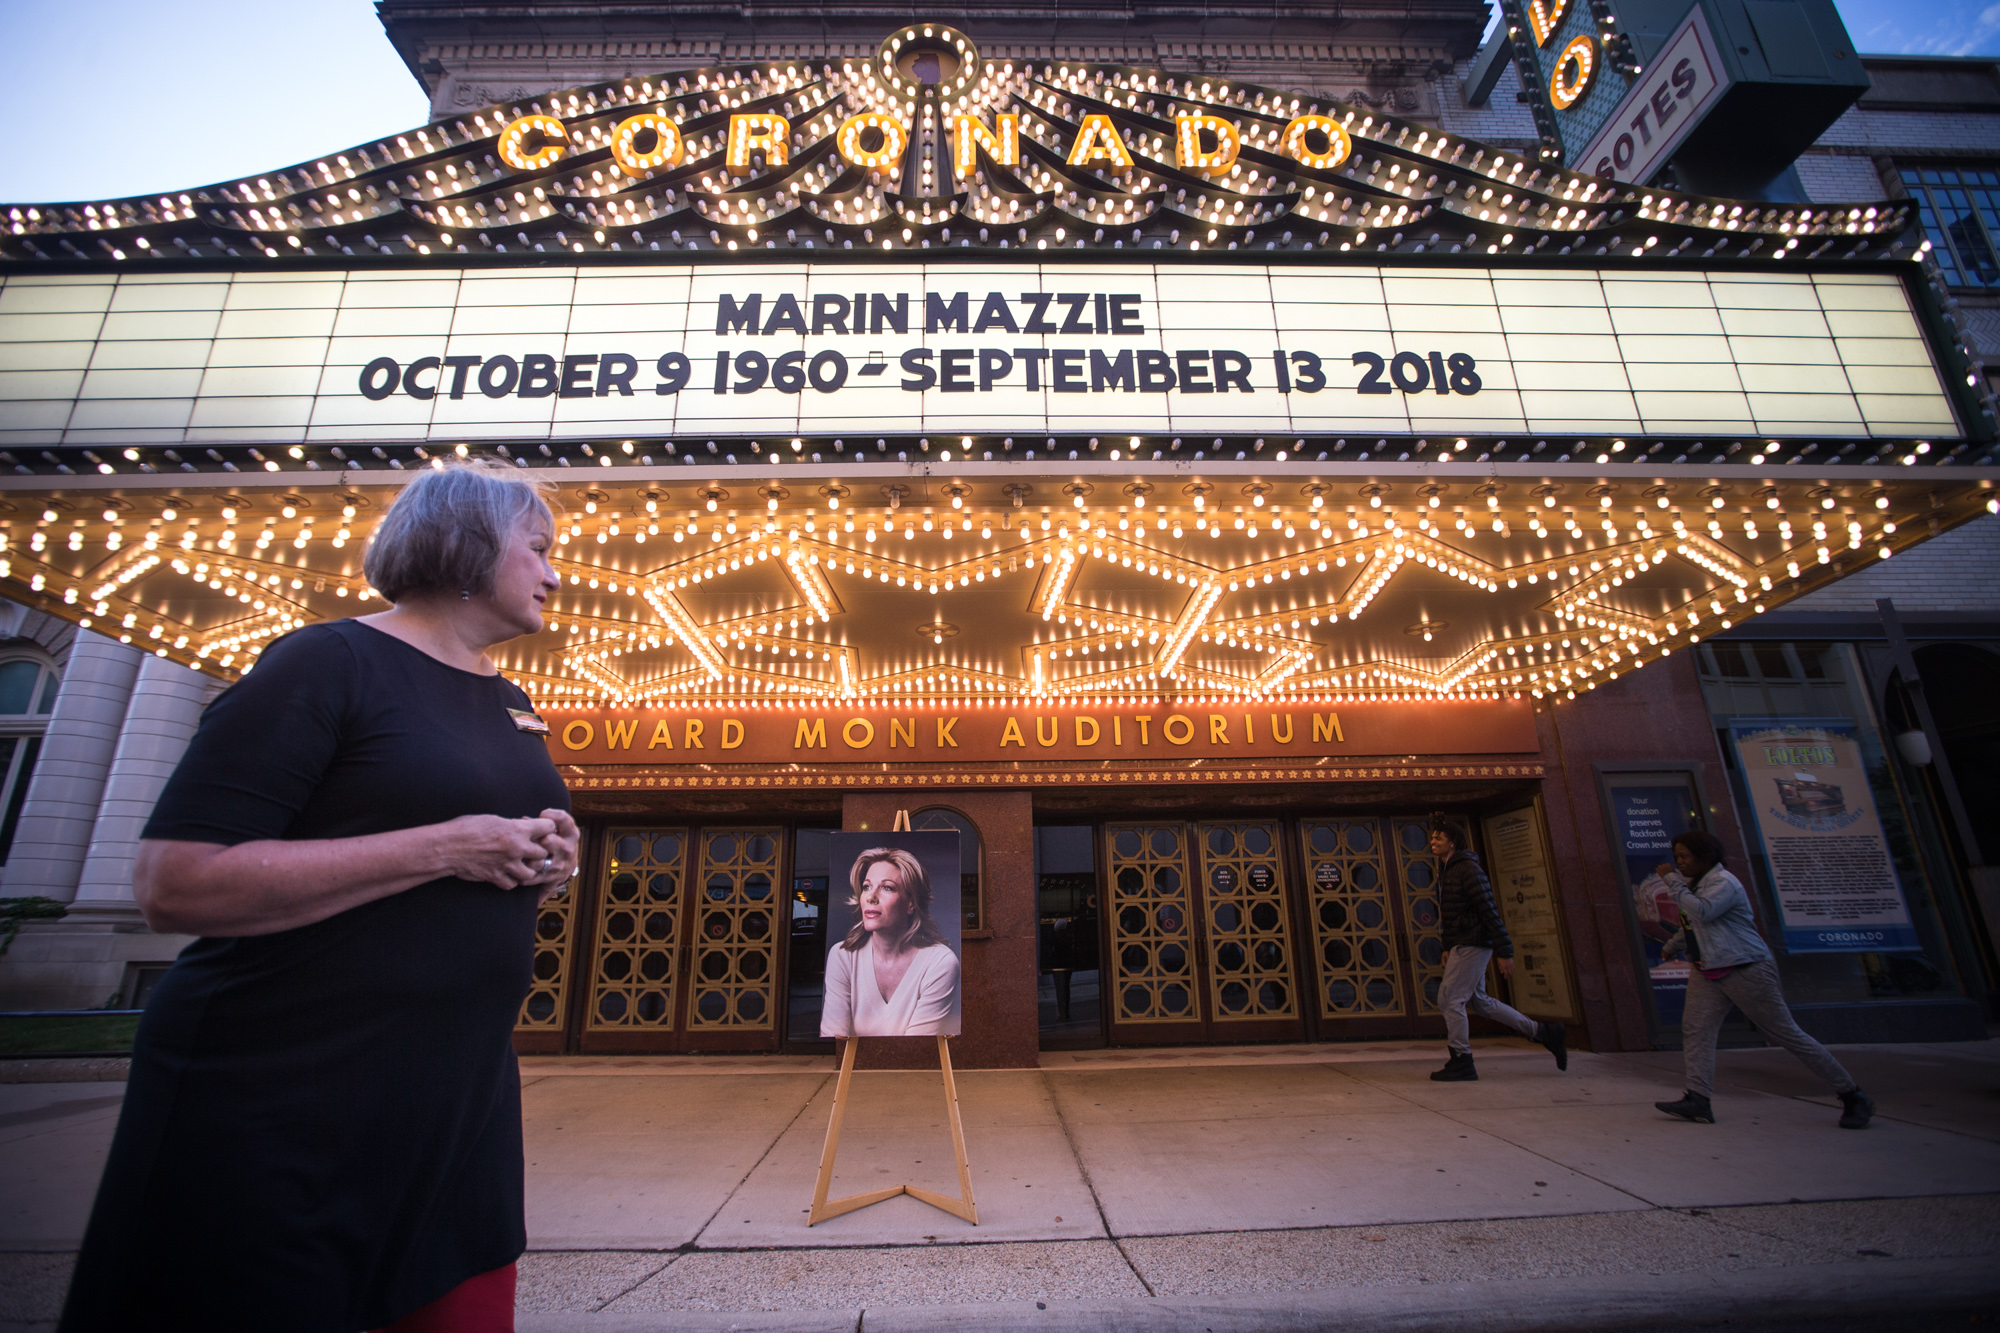 Mary Ann Smith of Rockford, the president of the Friends of the Coronado, takes a quiet moment near a portrait of the late Marin Mazzie, a Rockford native and Broadway theater star and who died September 13, on Wednesday, Sept. 19, 2018, at the Coronado Performing Arts Center in Rockford. About a dozen people gathered outside the theater to witness the marque lights shut off for one minute in Mazzie's honor. [SCOTT P. YATES/RRSTAR.COM STAFF]